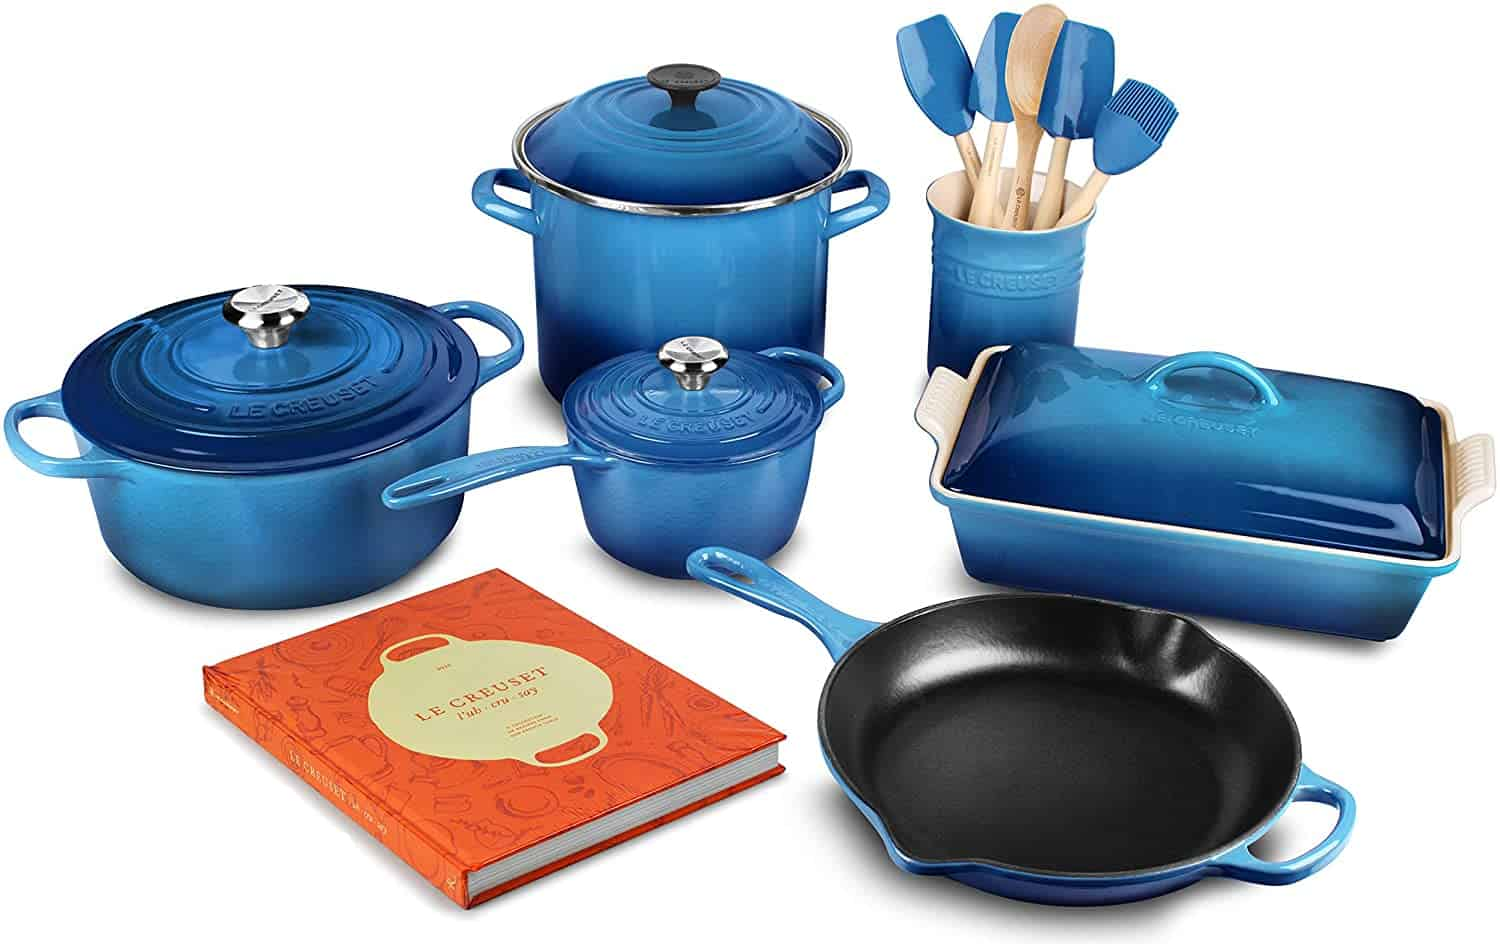 Best cast-iron induction cookware set: Le Creuset